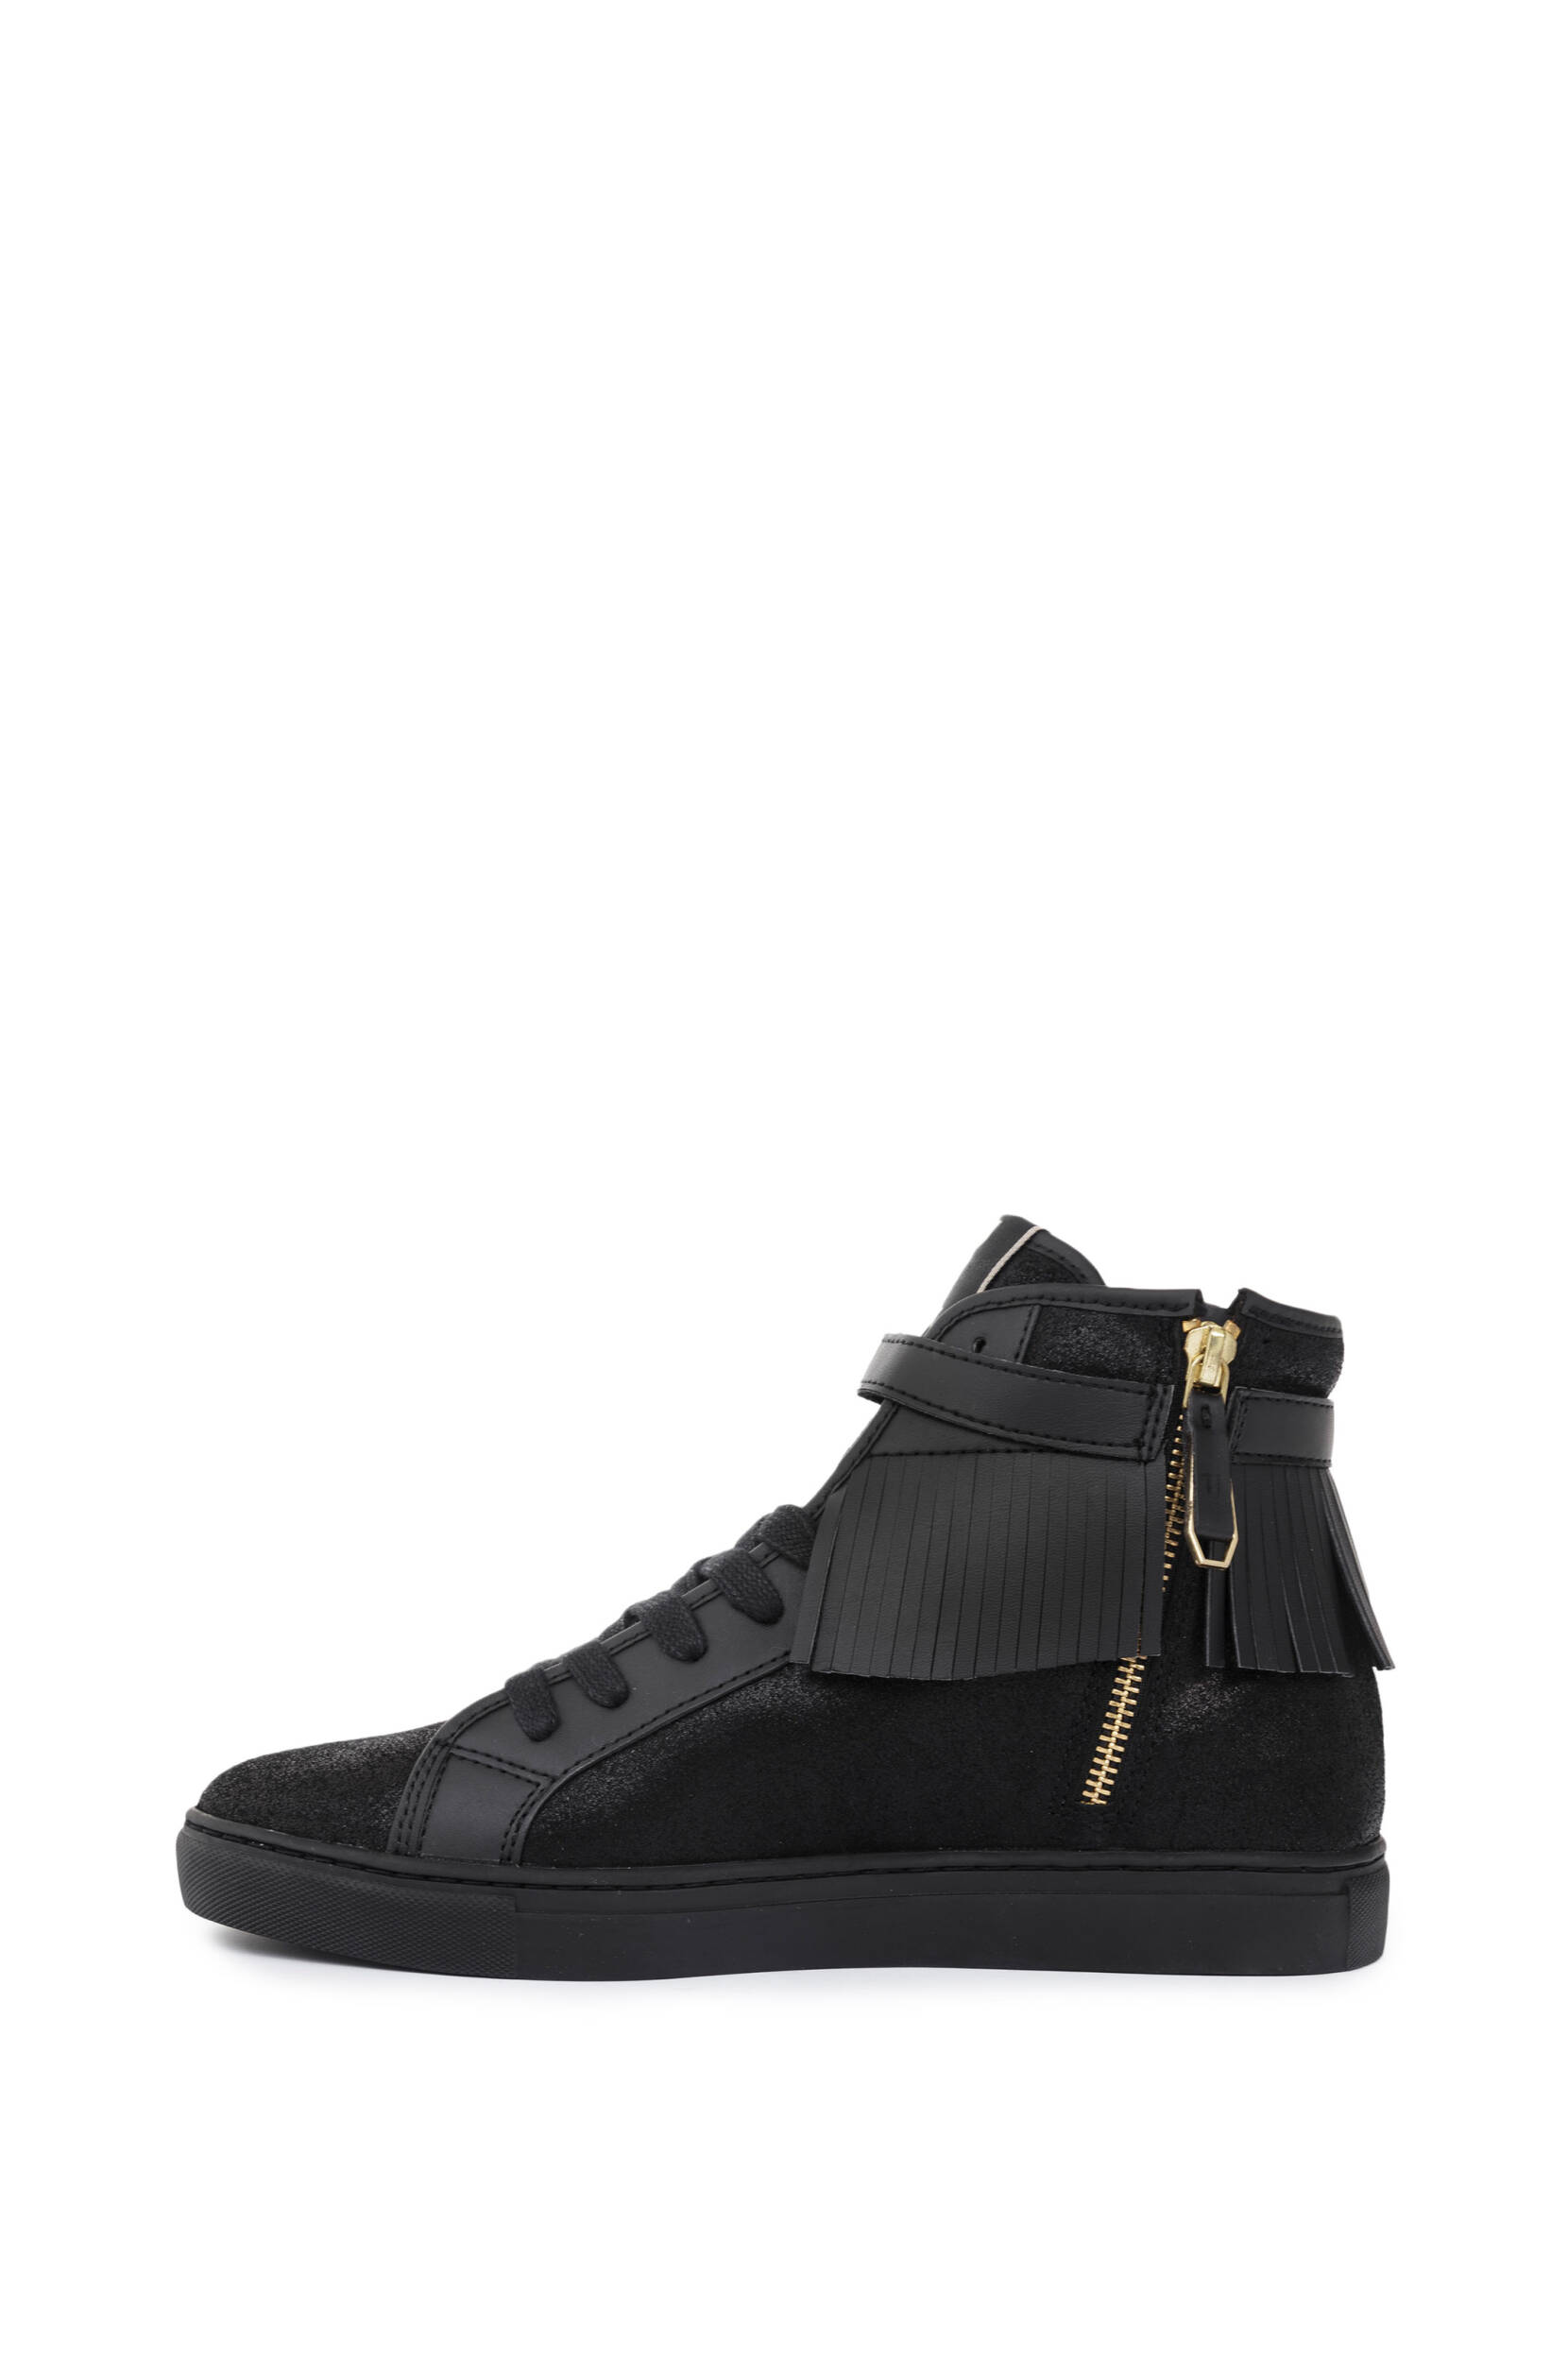 High Top Polo Shoes Canva